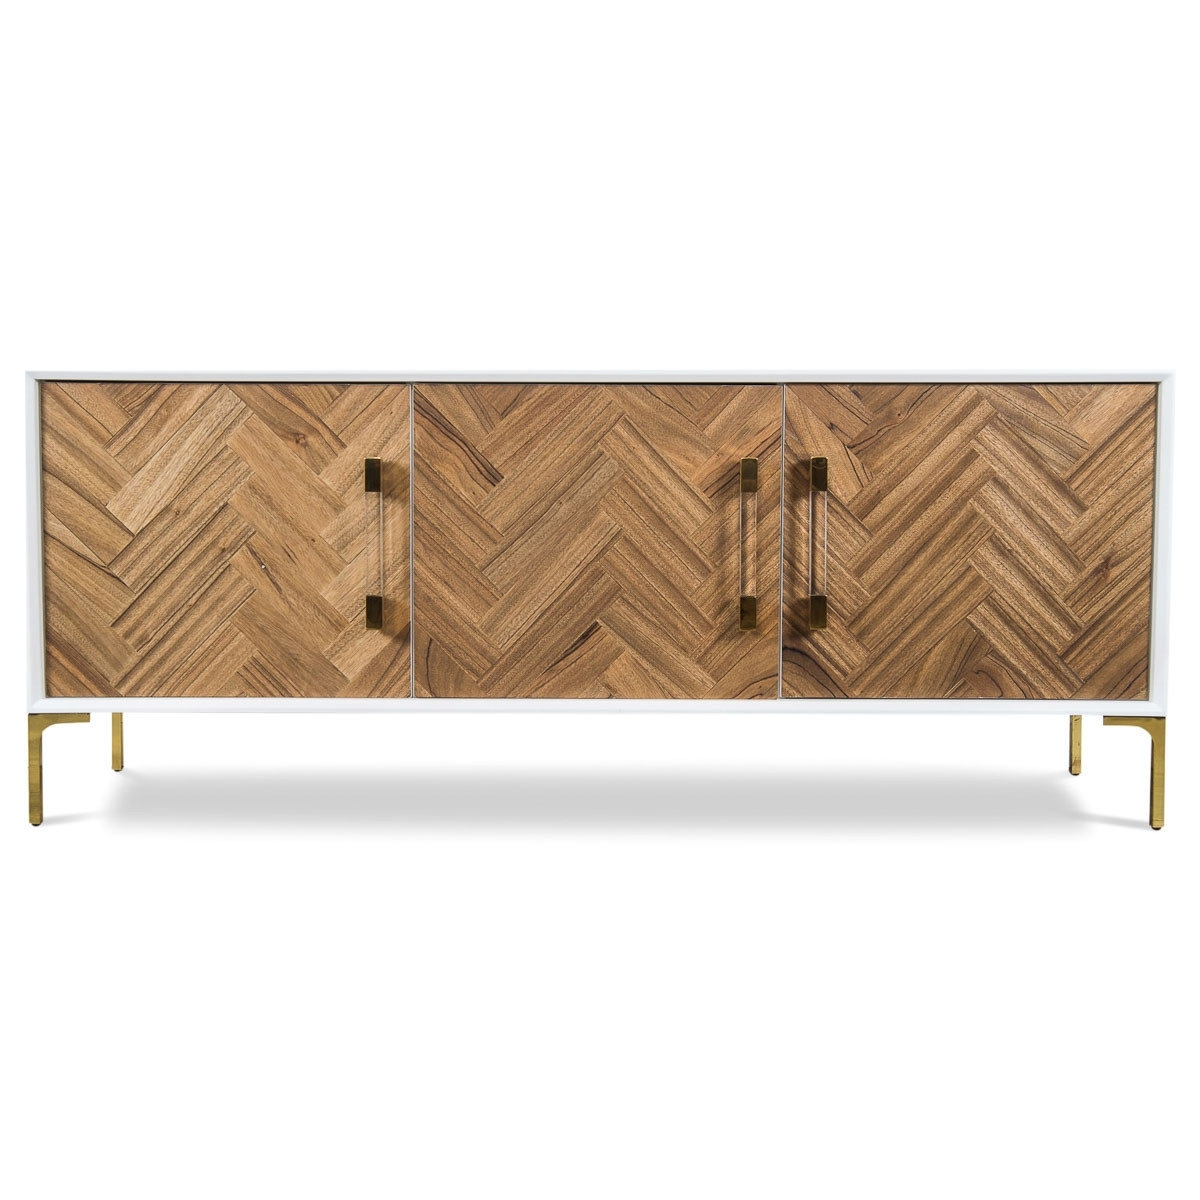 Inspiration about Modshop Amalfi Sideboard | Wayfair Throughout 2017 Walnut Finish 4 Door Sideboards (#15 of 20)